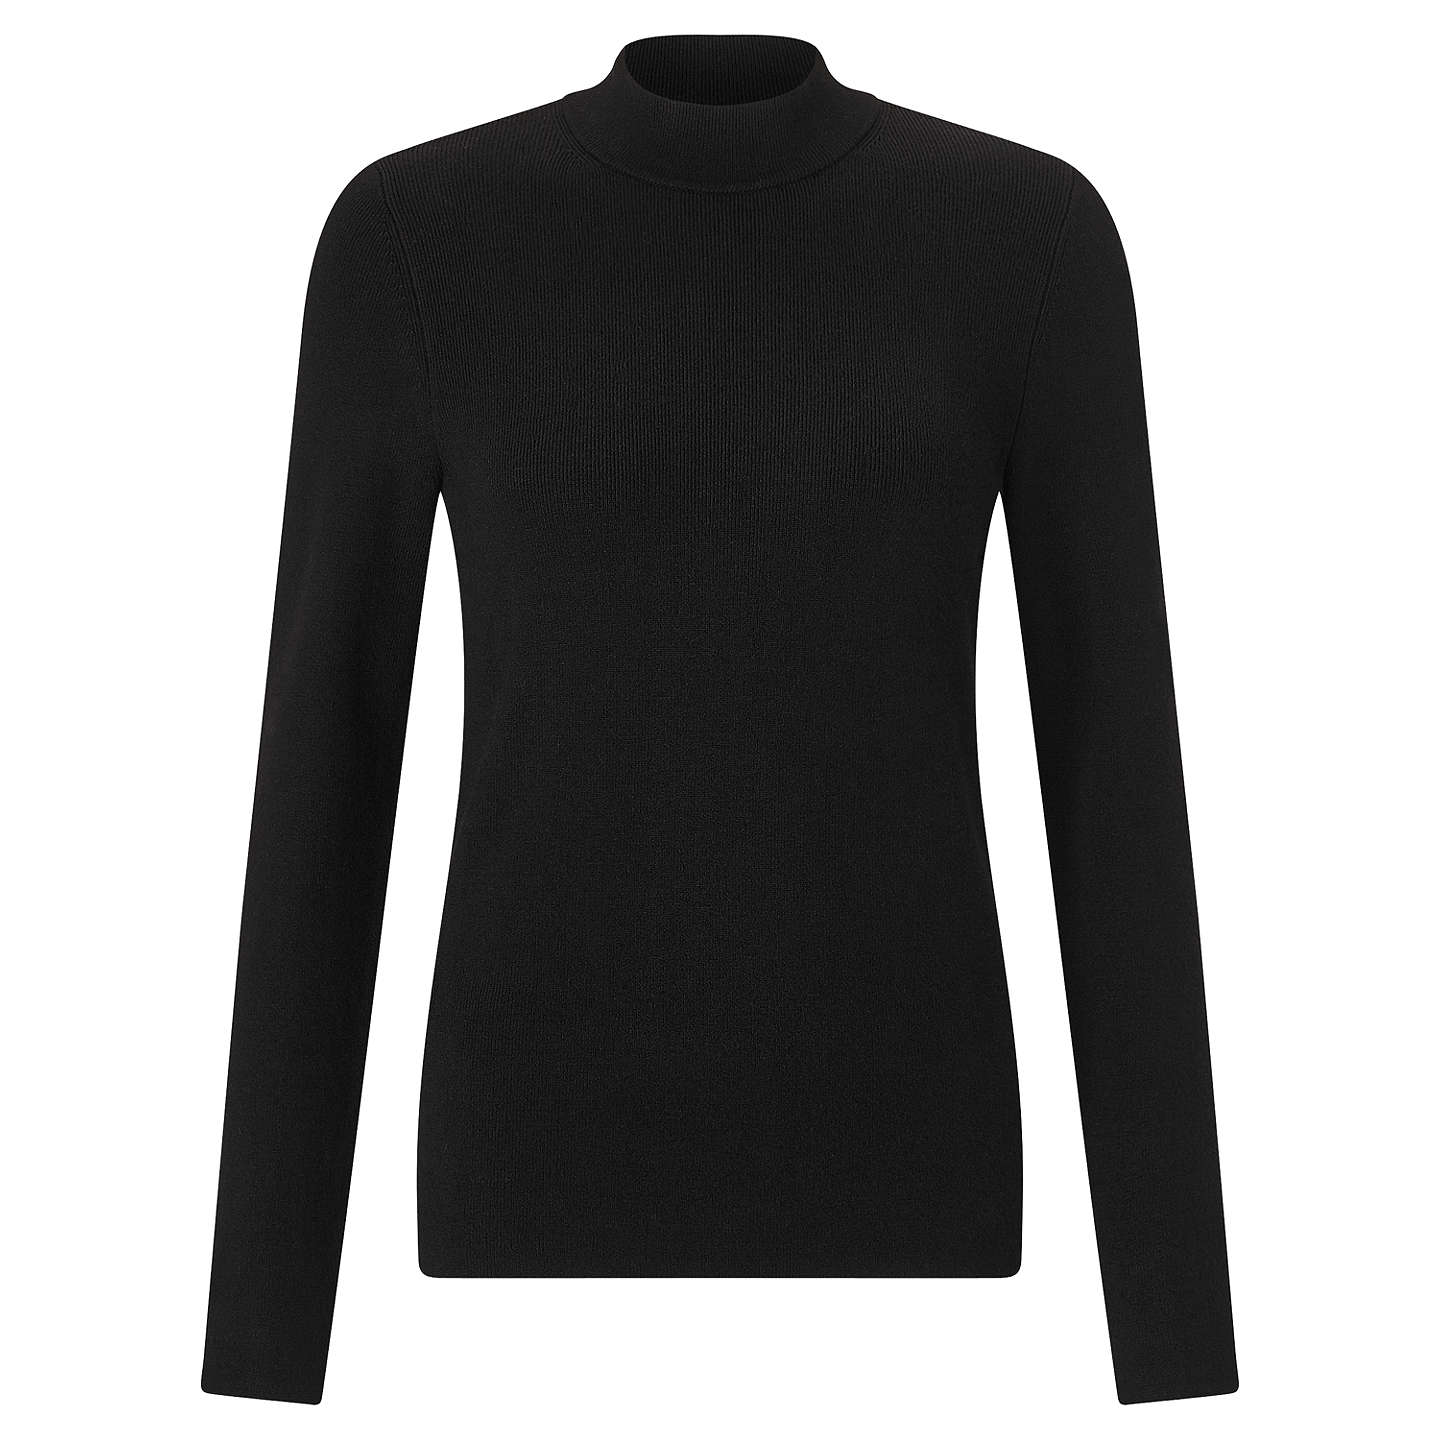 BuyJohn Lewis Turtle Neck Jumper, Black, 8 Online at johnlewis.com